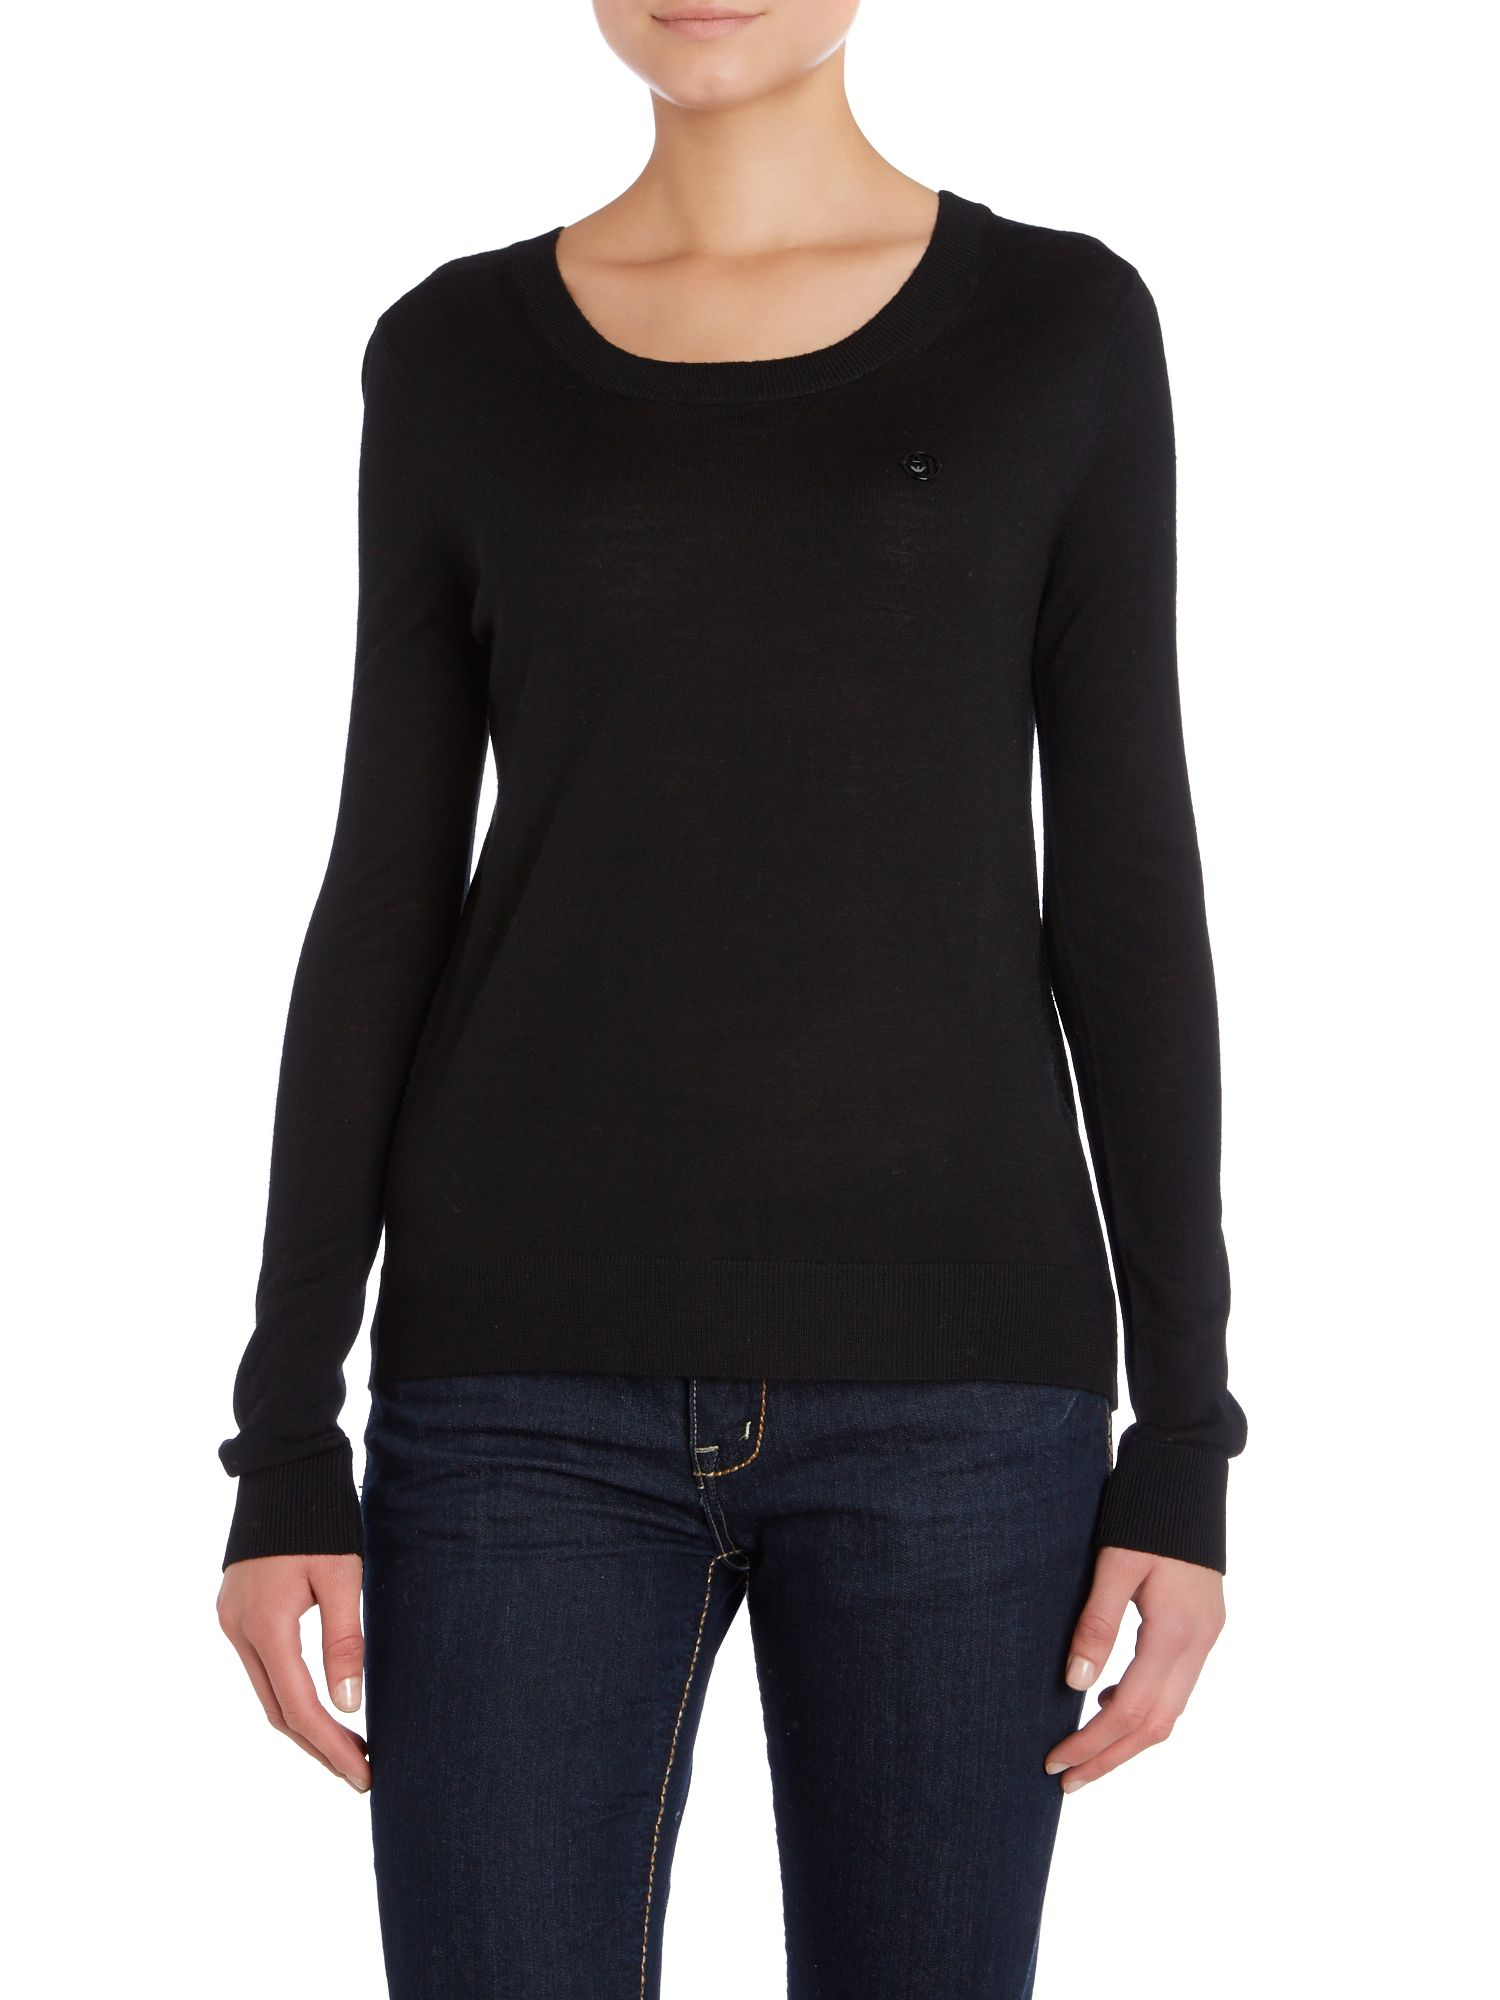 Long sleeve logo knit with frill at the back